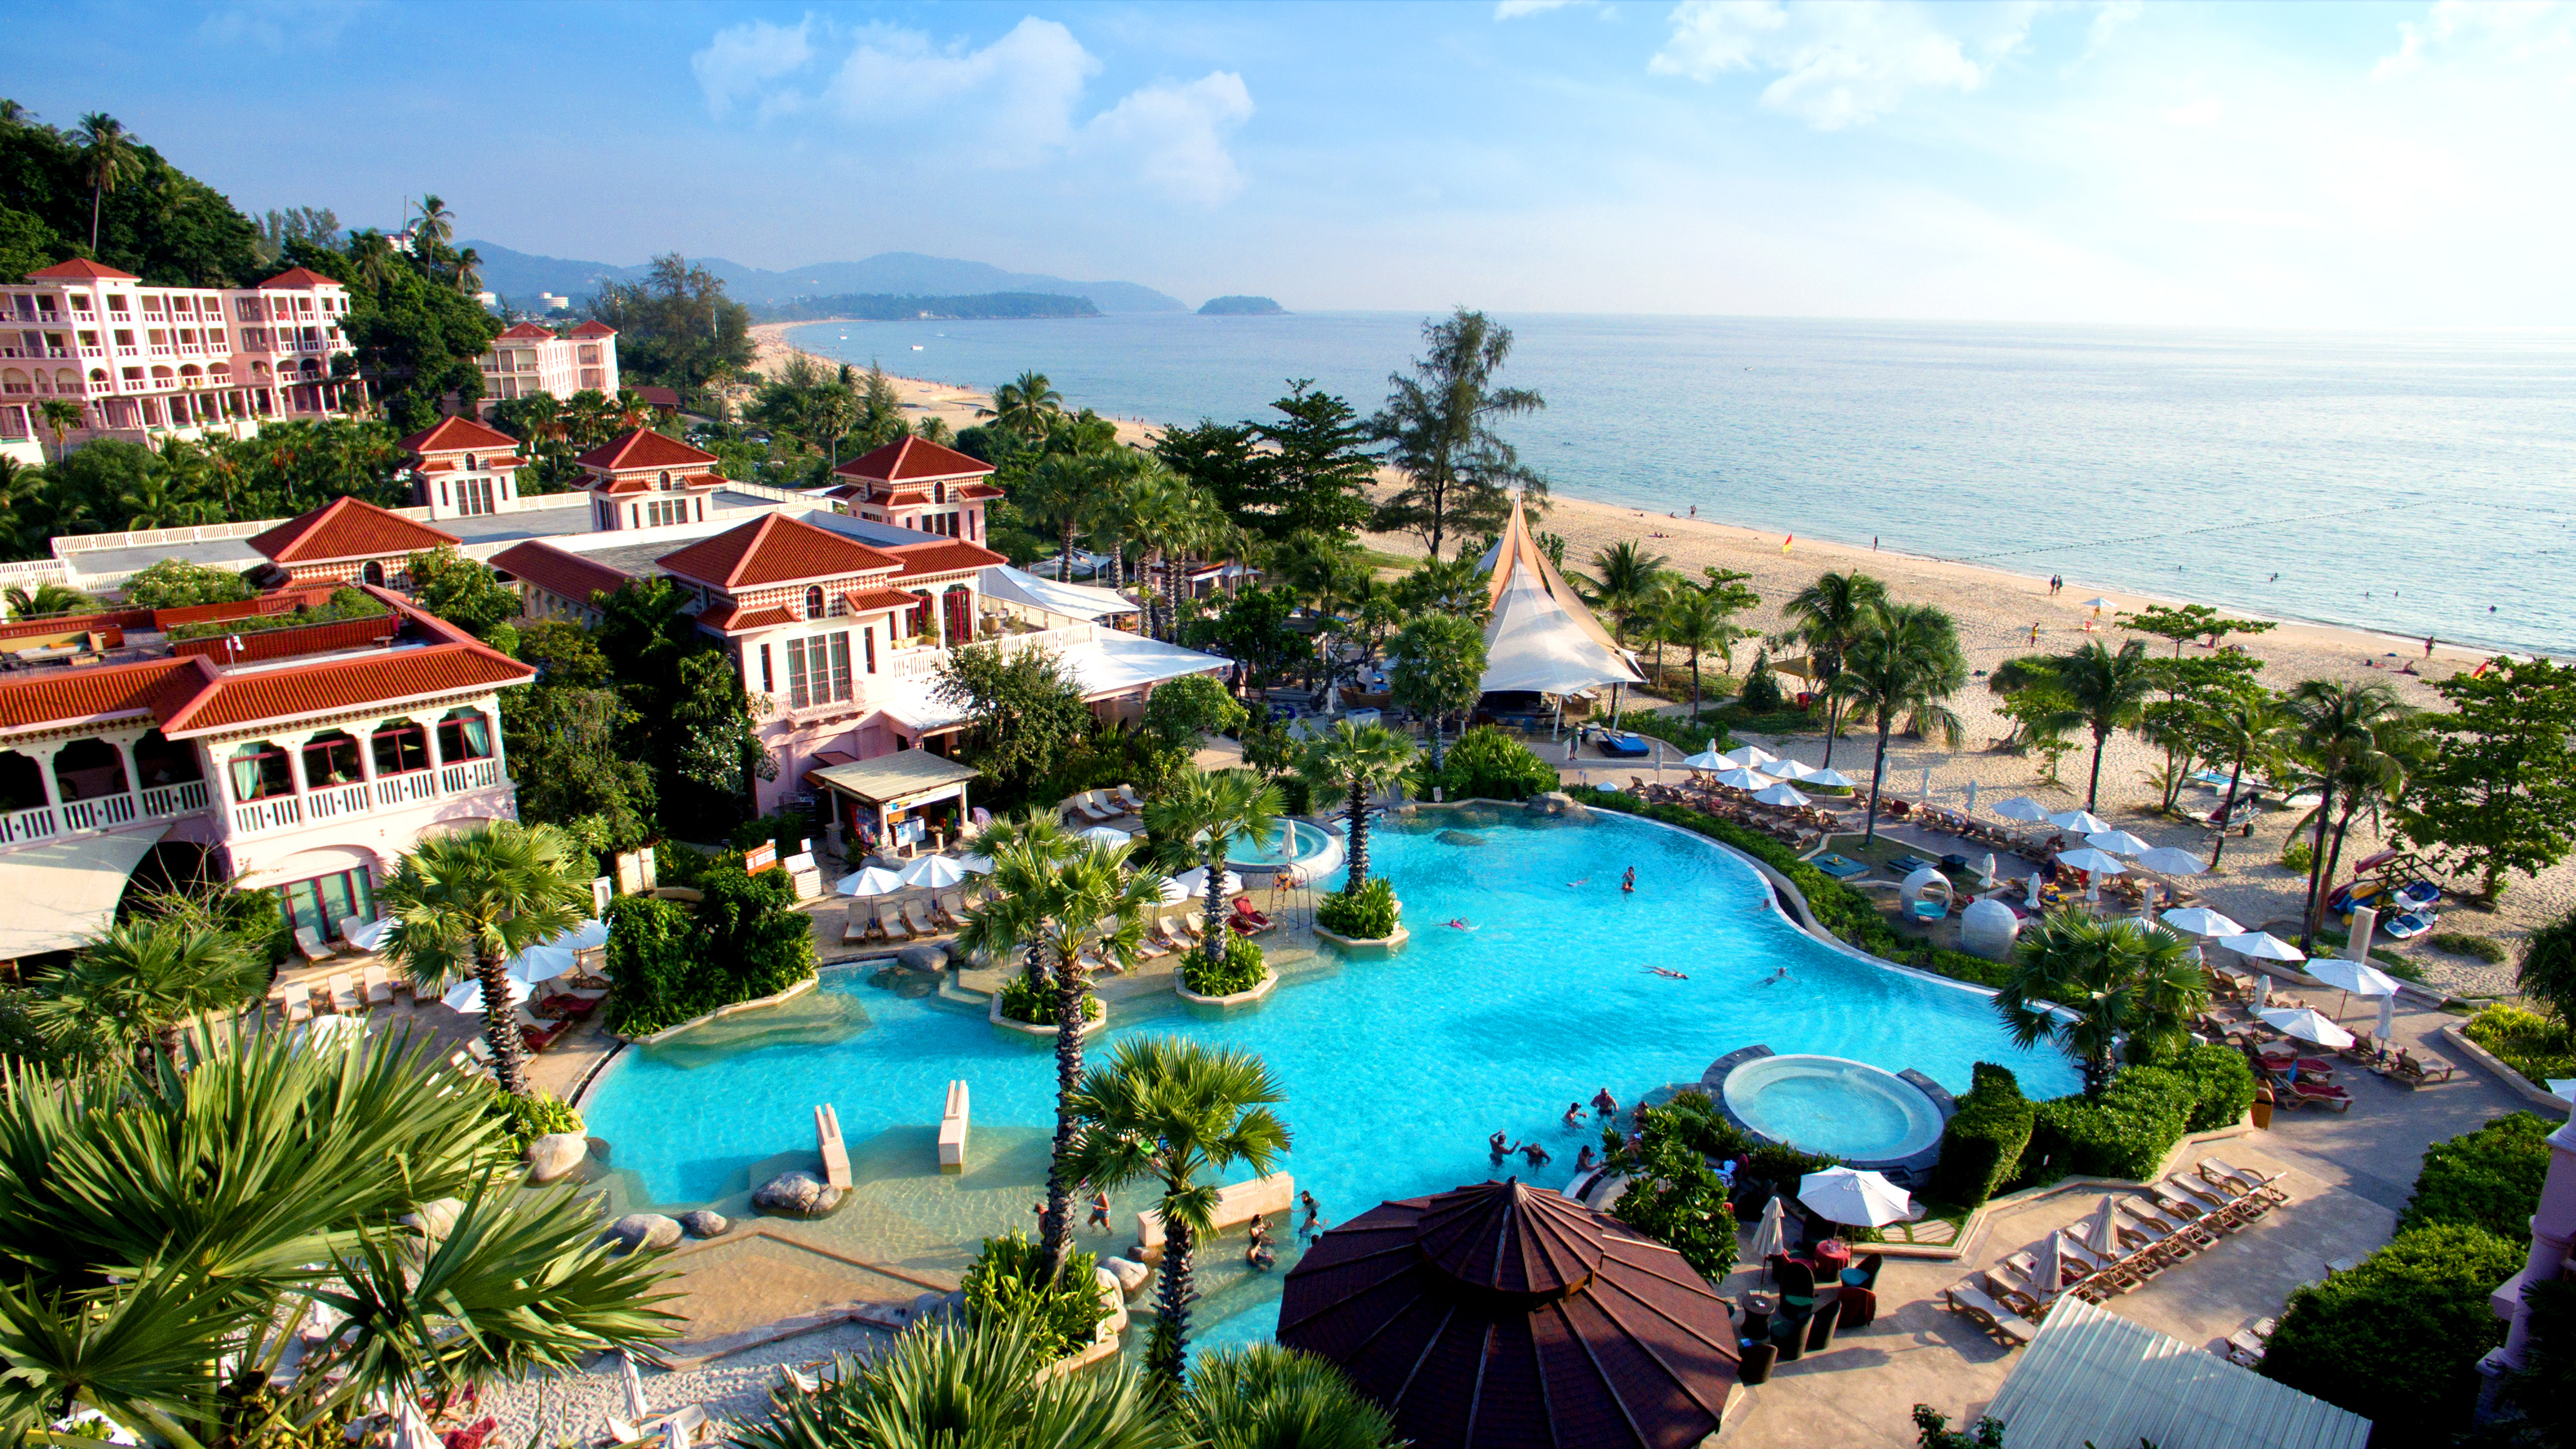 Shot of a Centara Resort with pool and the sea in the background